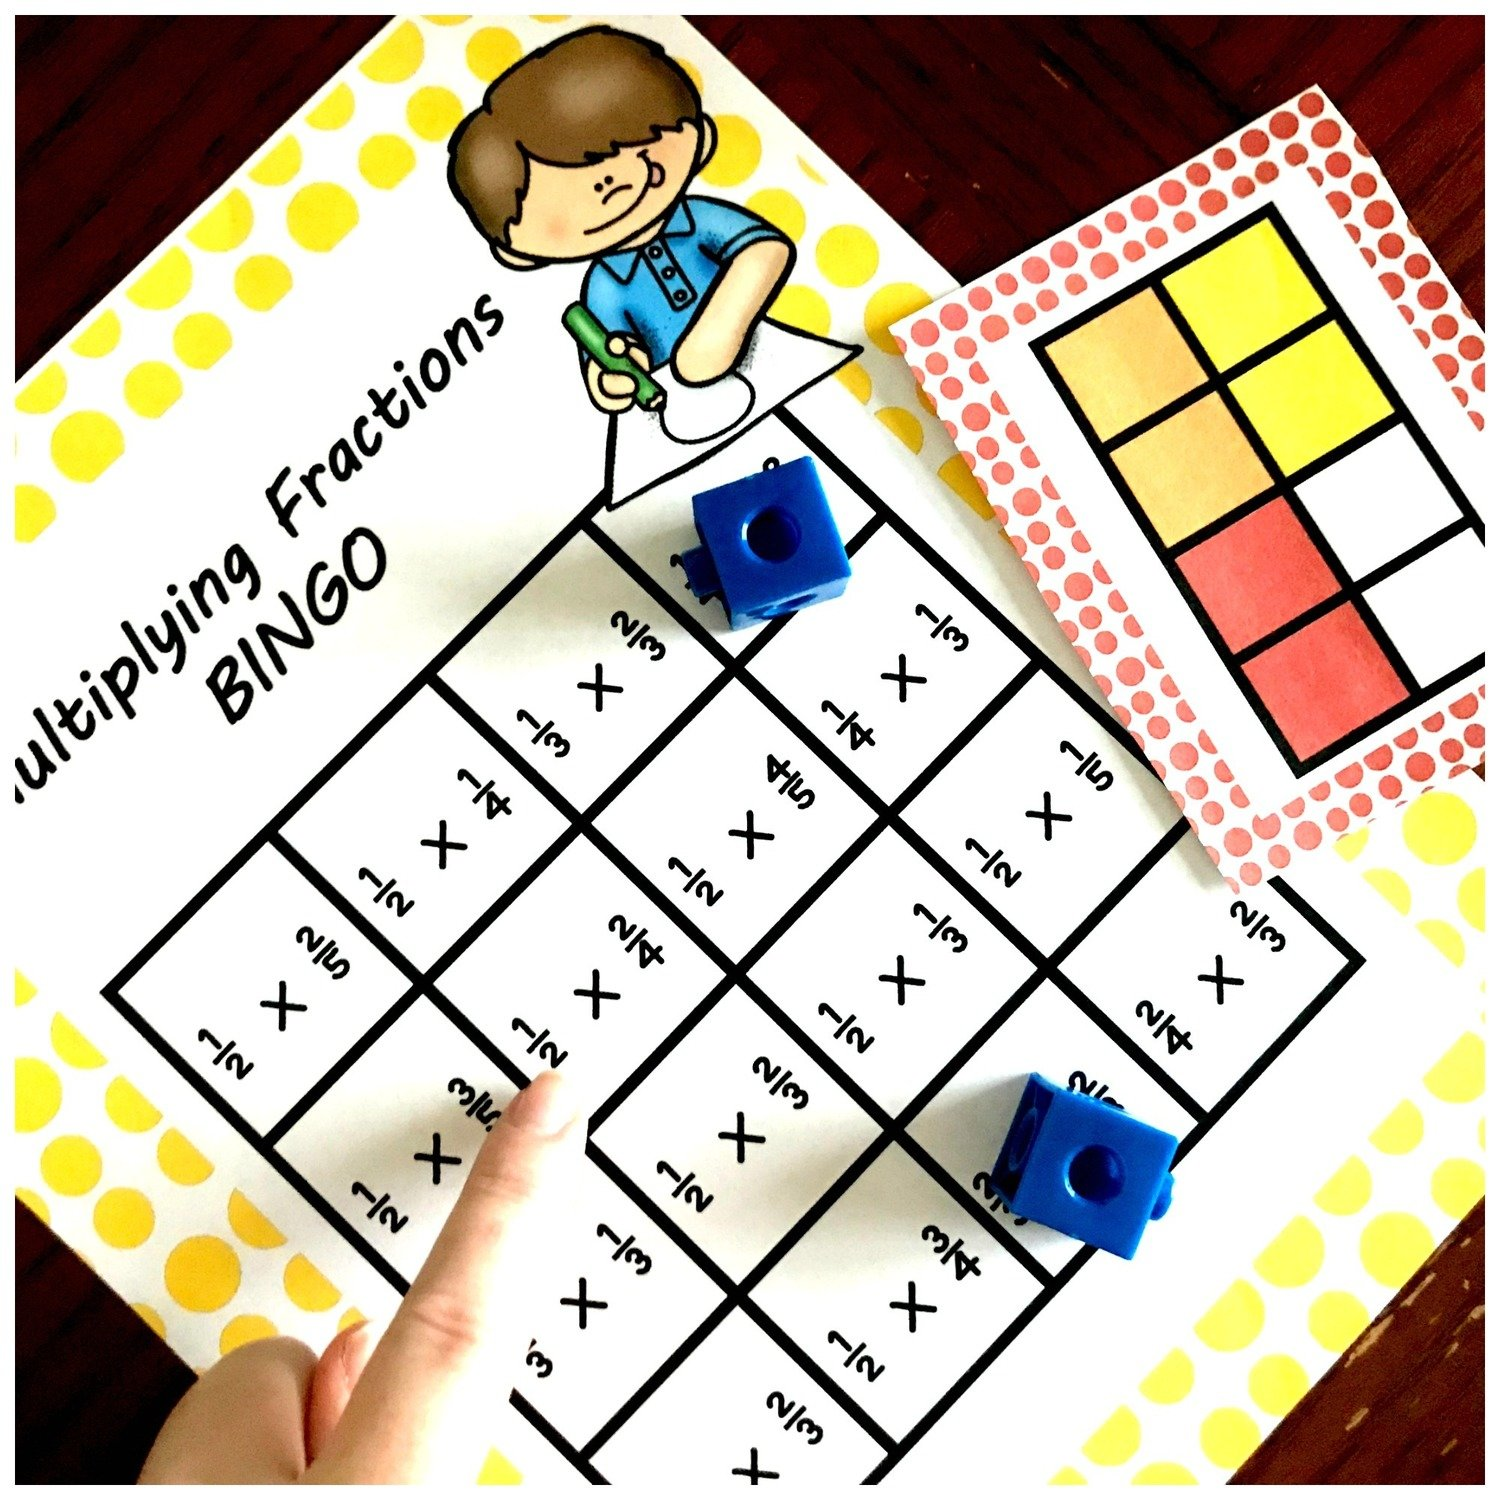 Multiplying Fraction By Fractions BINGO